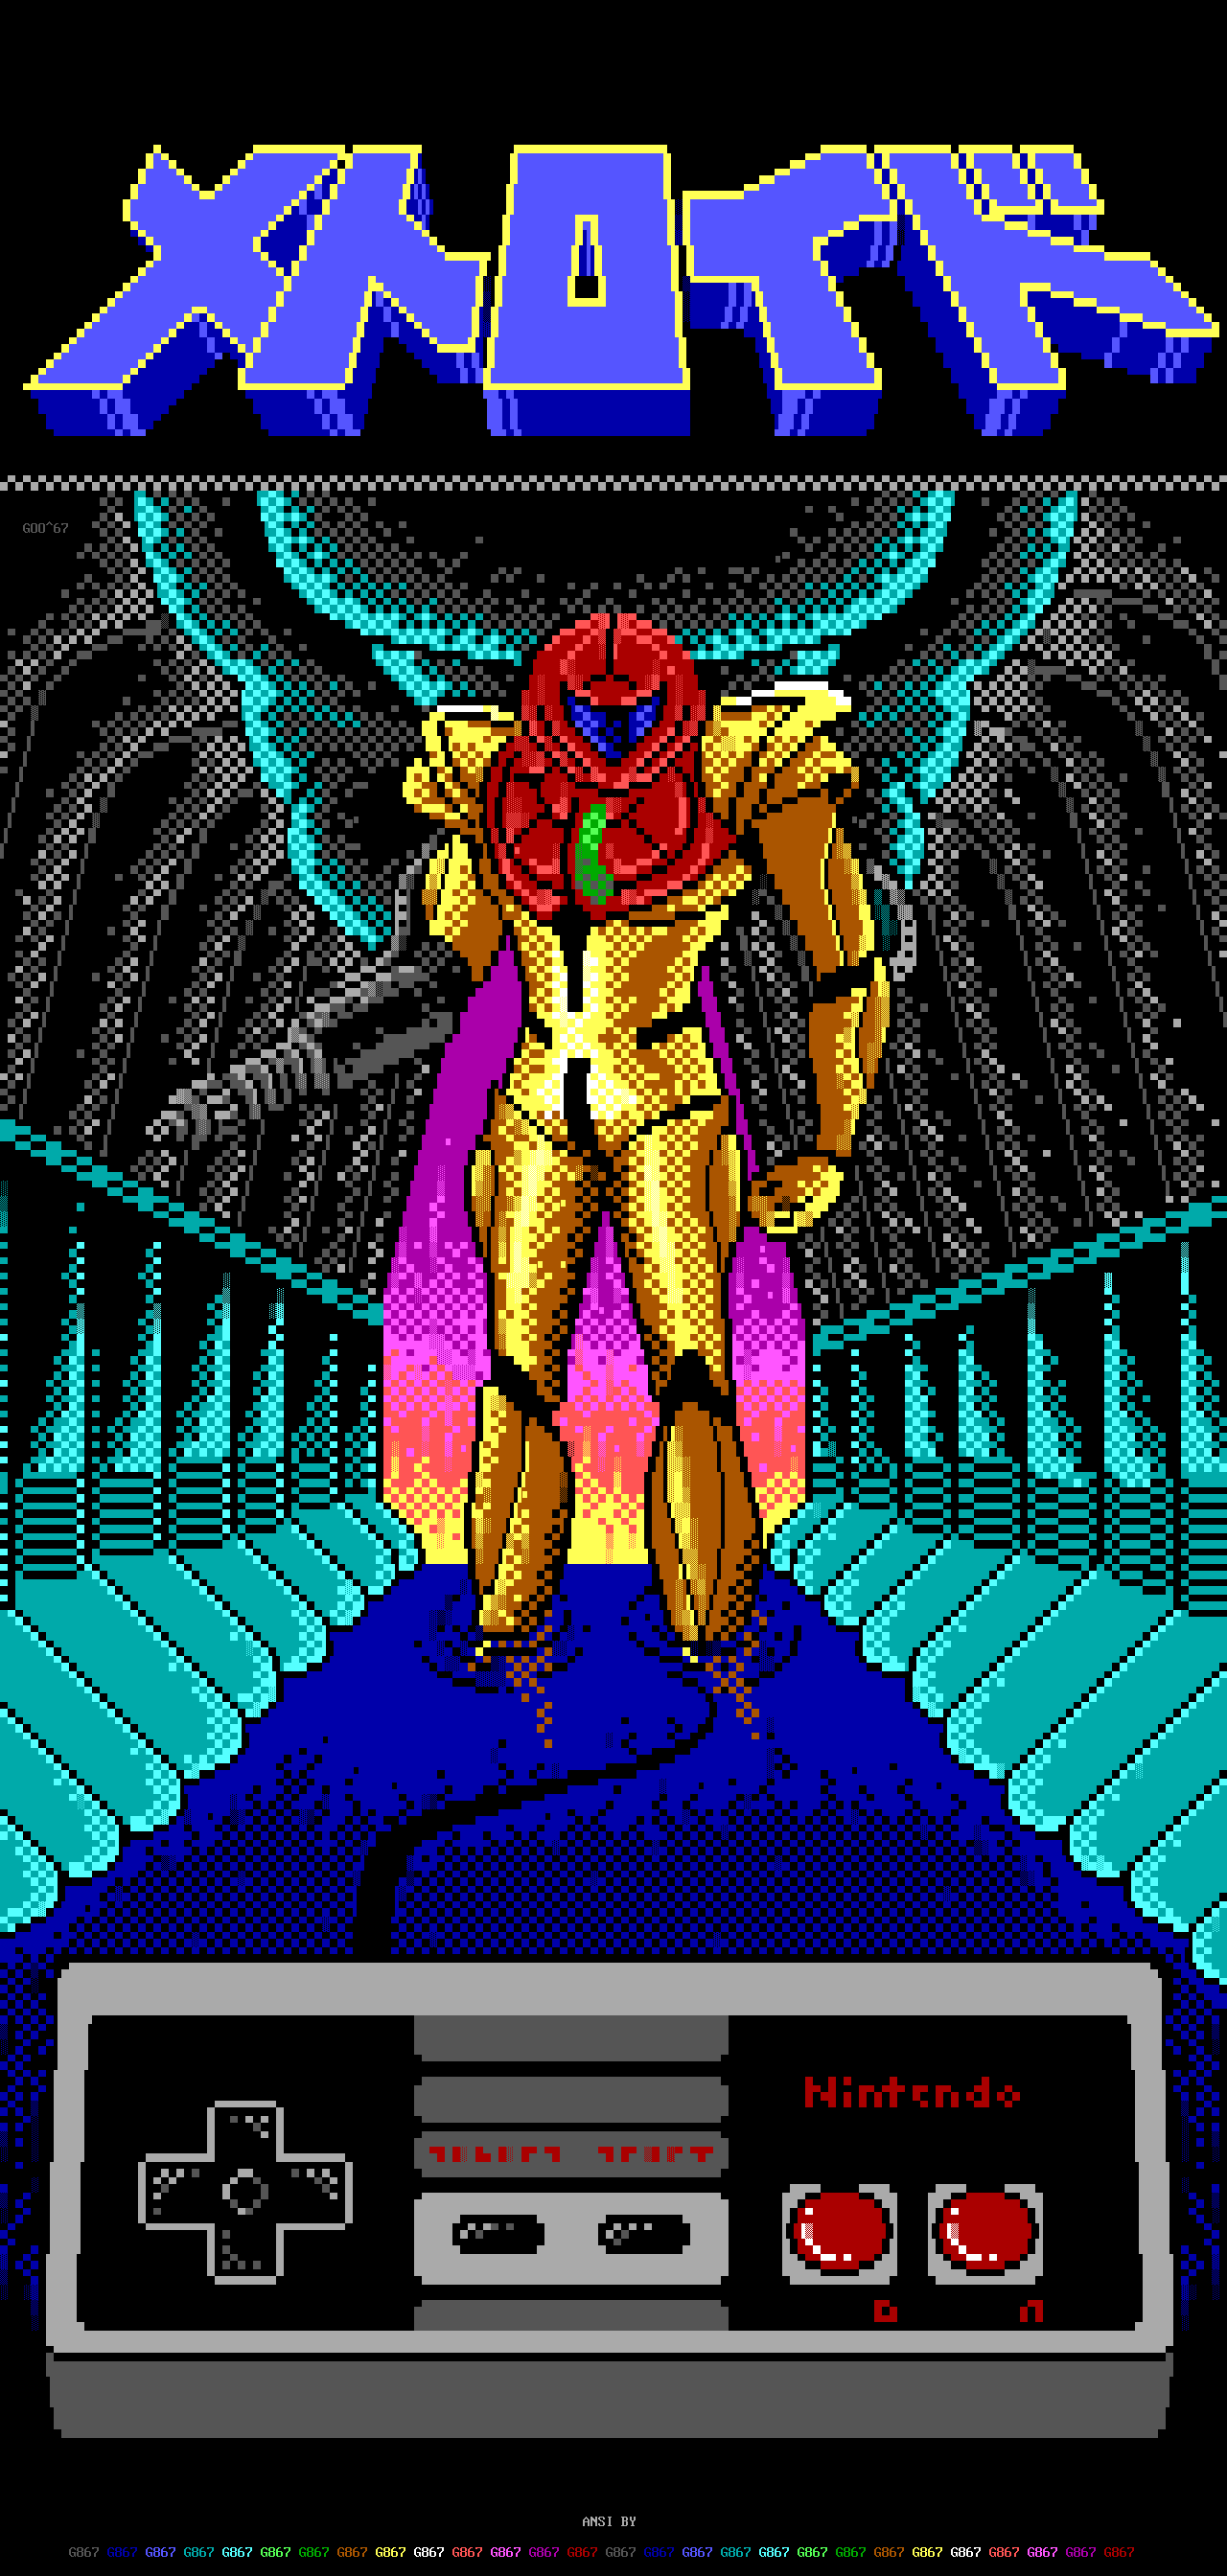 goo-metroid.bin, goo, mypal, mypalgoo, metroid, nes, game, nes game, control, joystick, button, yellow, red, tunnel, blue, cyan, japan, japanese, logo, font, poster